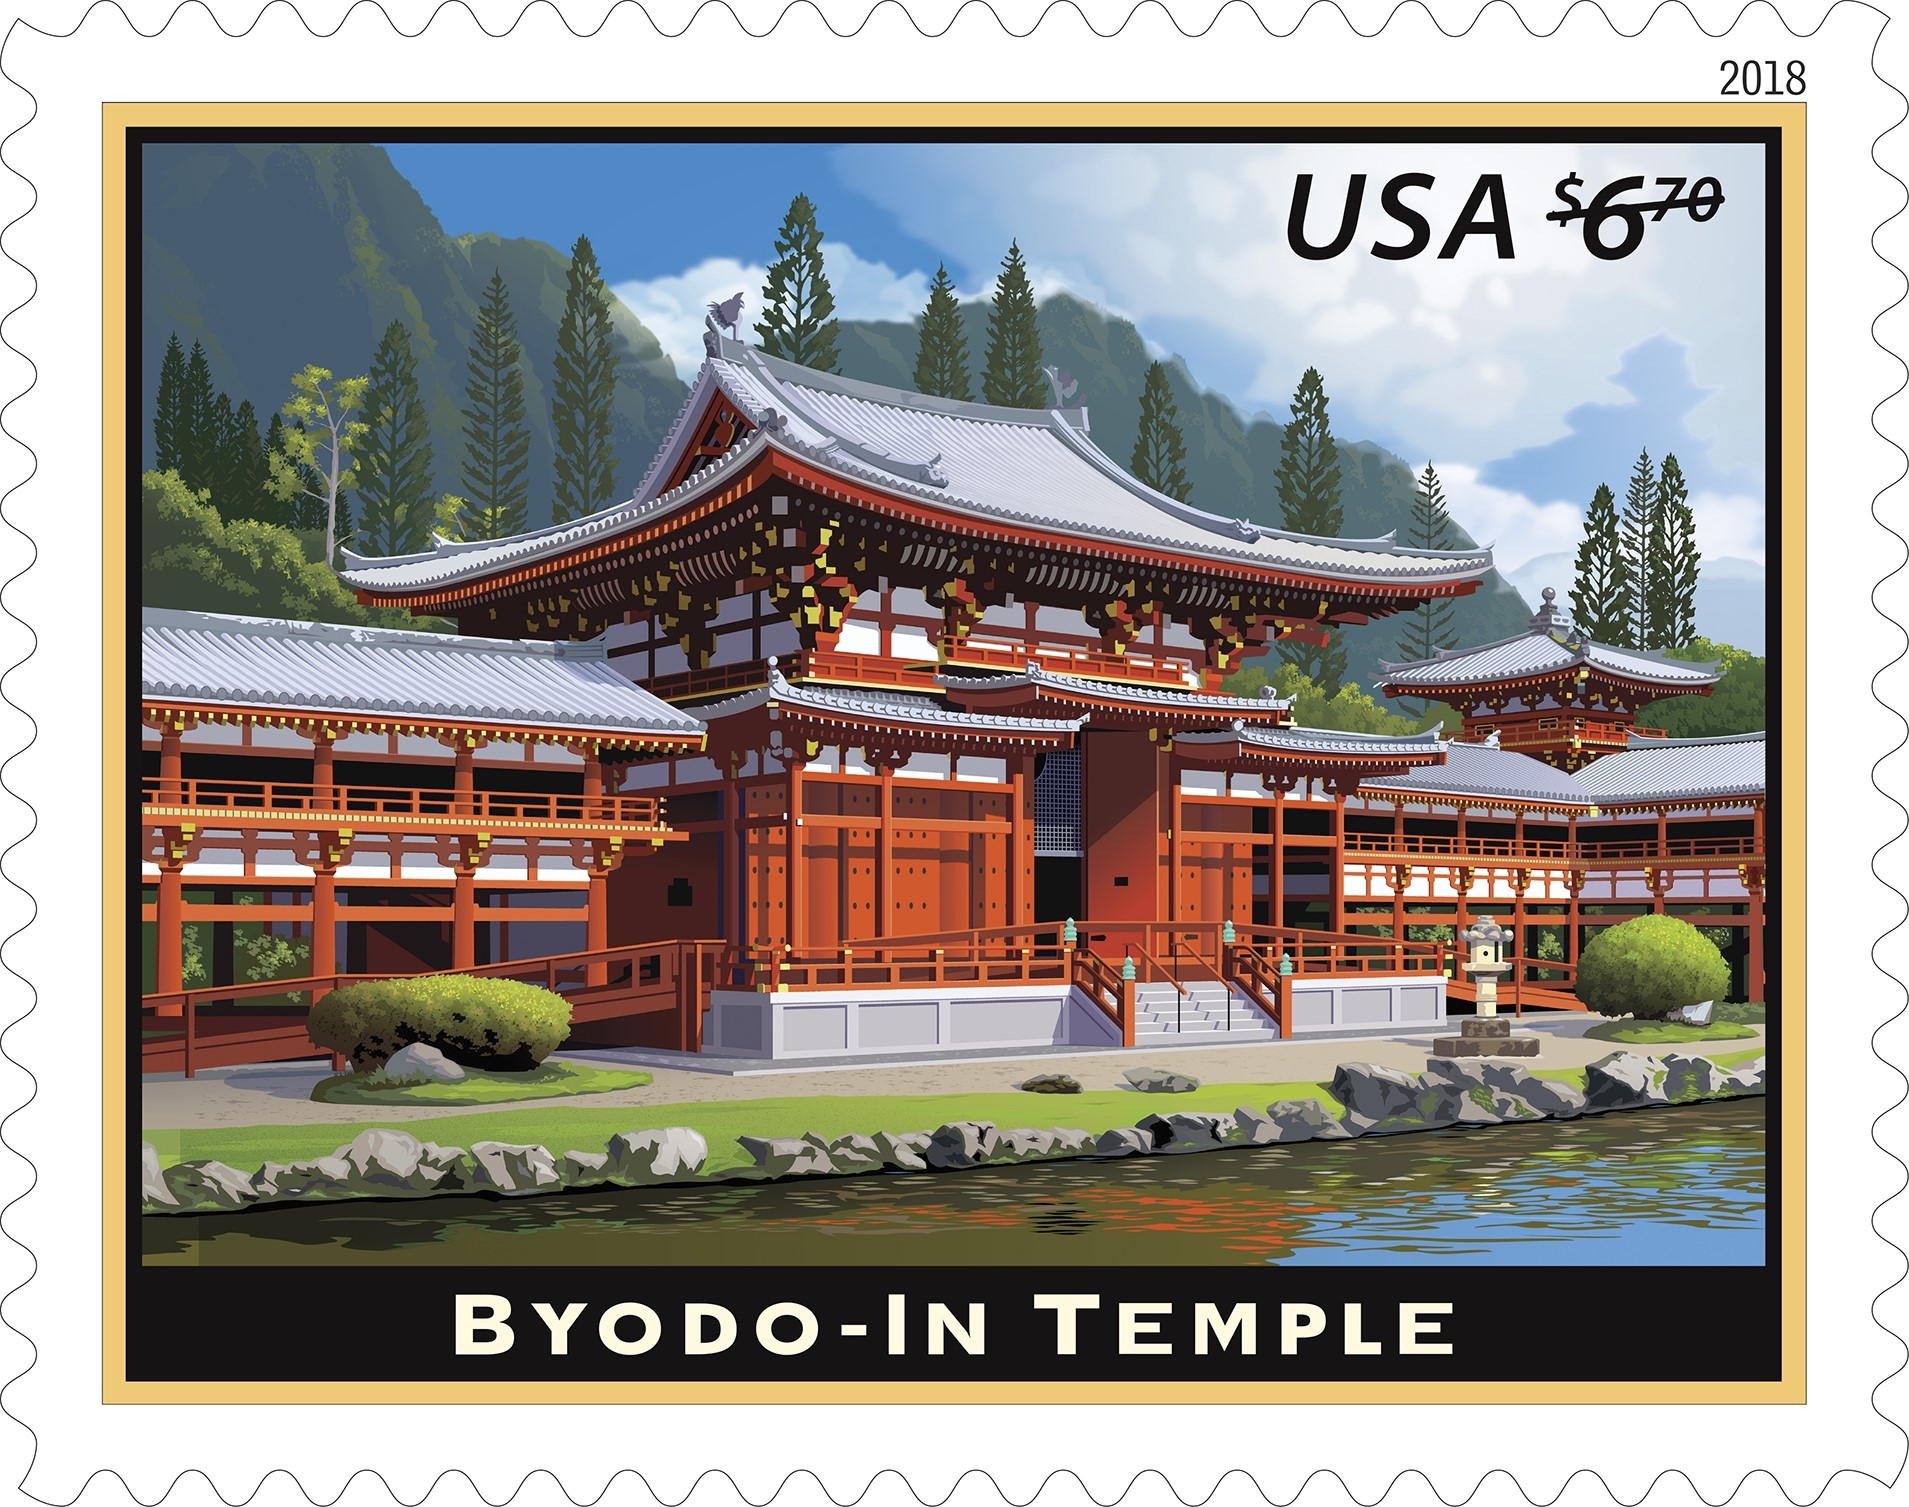 United States - 2018-01-21 Bydo-In Temple - $6.70 Priority Mail Rate stamp and stamped envelope